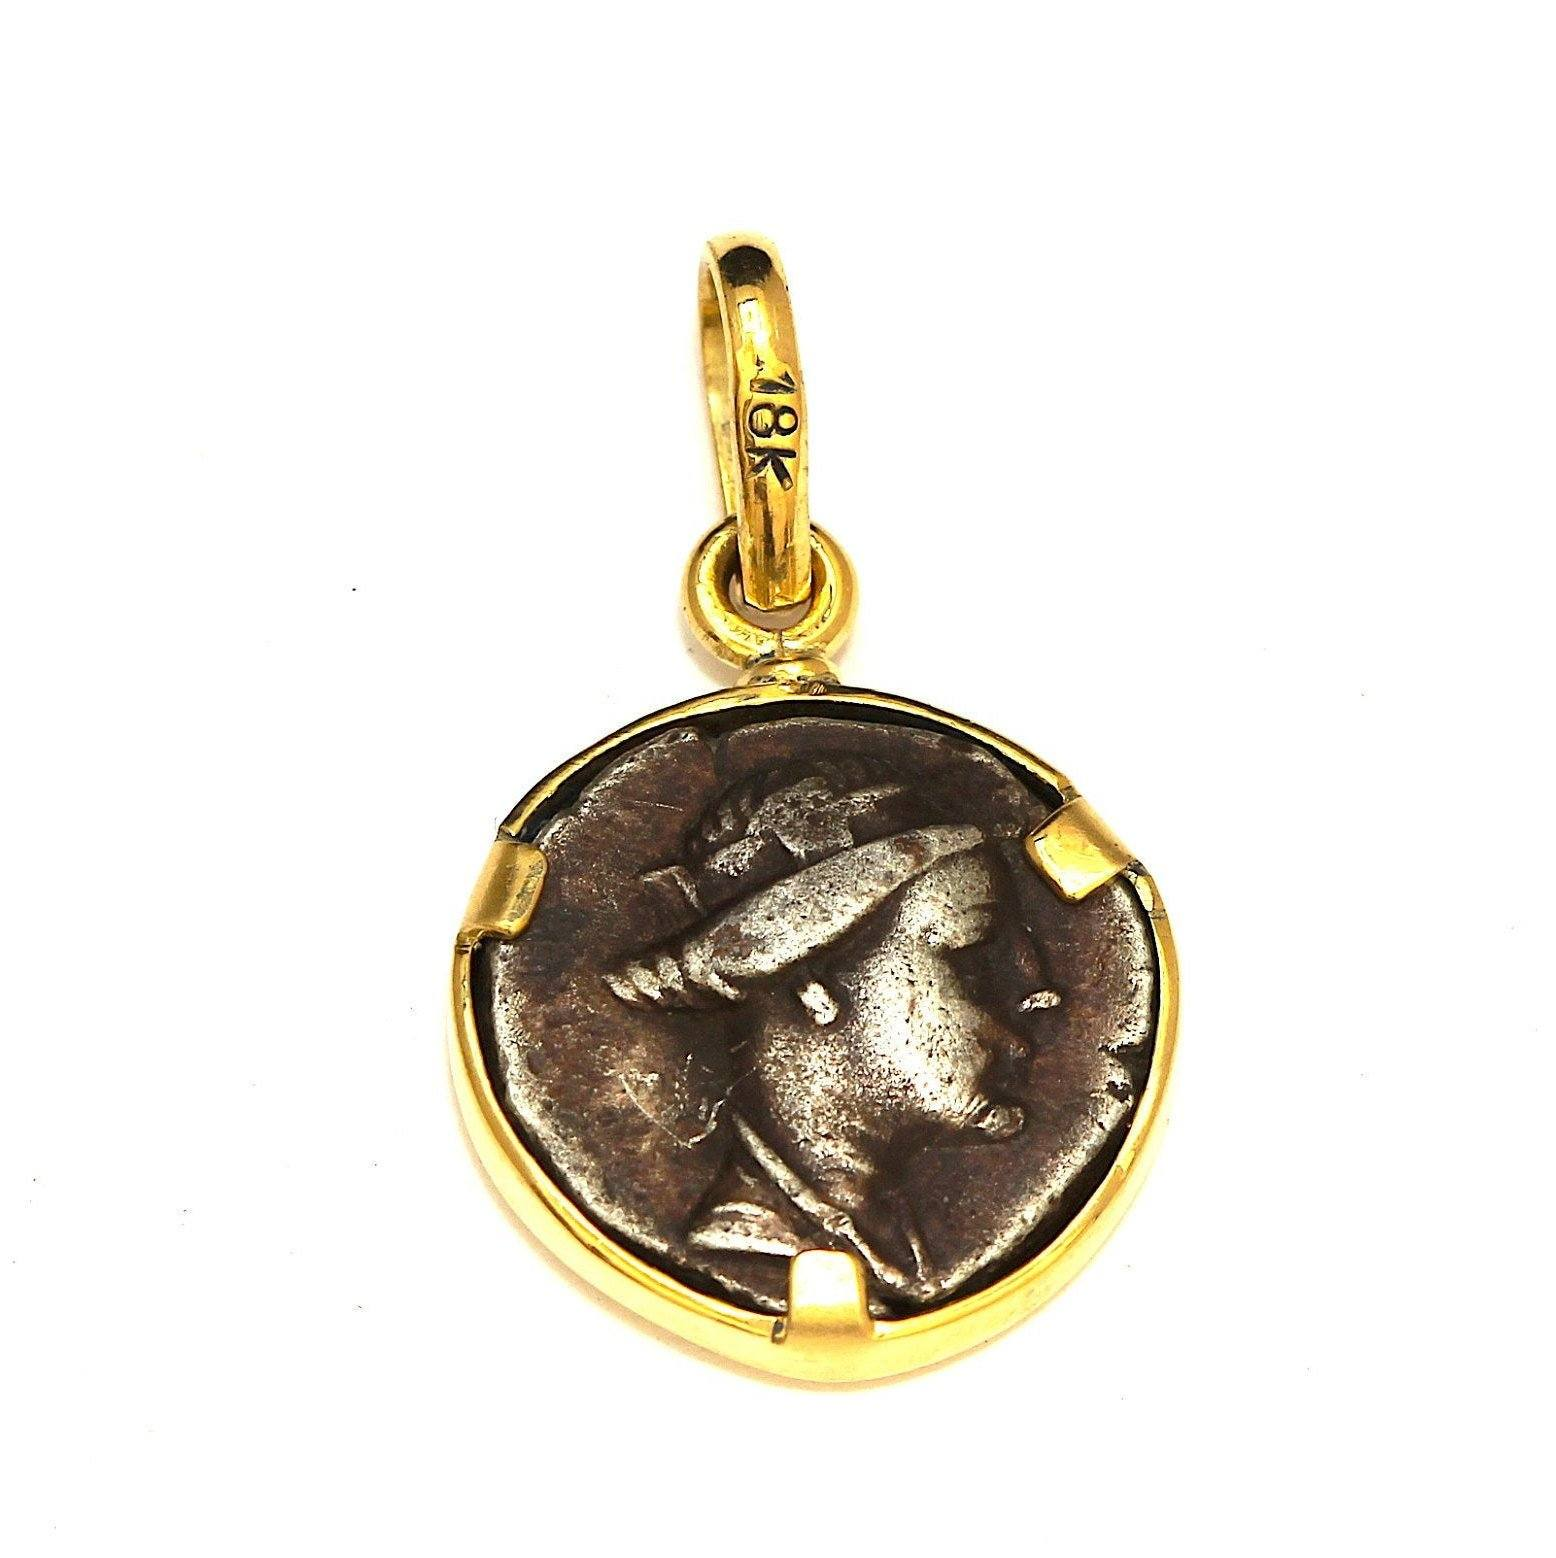 18K Gold Pendant, Genuine, Greek Coin, Certificate 6552 - Erez Ancient Coin Jewelry